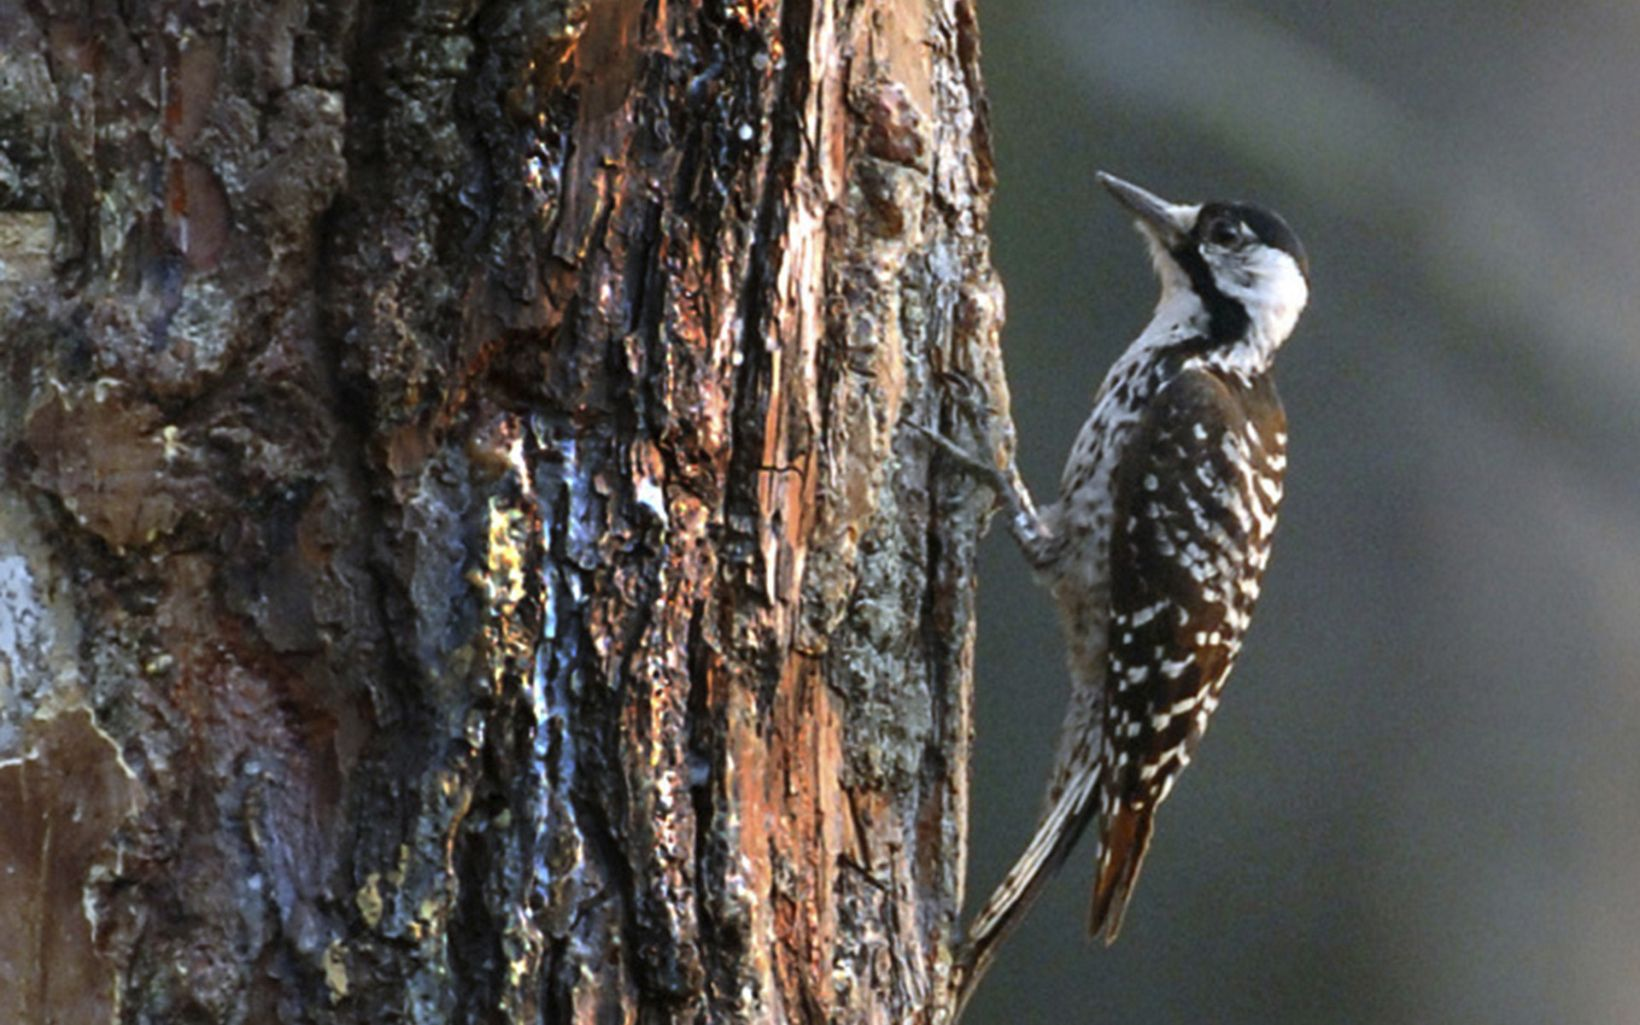 The red-cockaded woodpecker (Picoides borealis) is the only woodpecker species that nests exclusively in live trees.